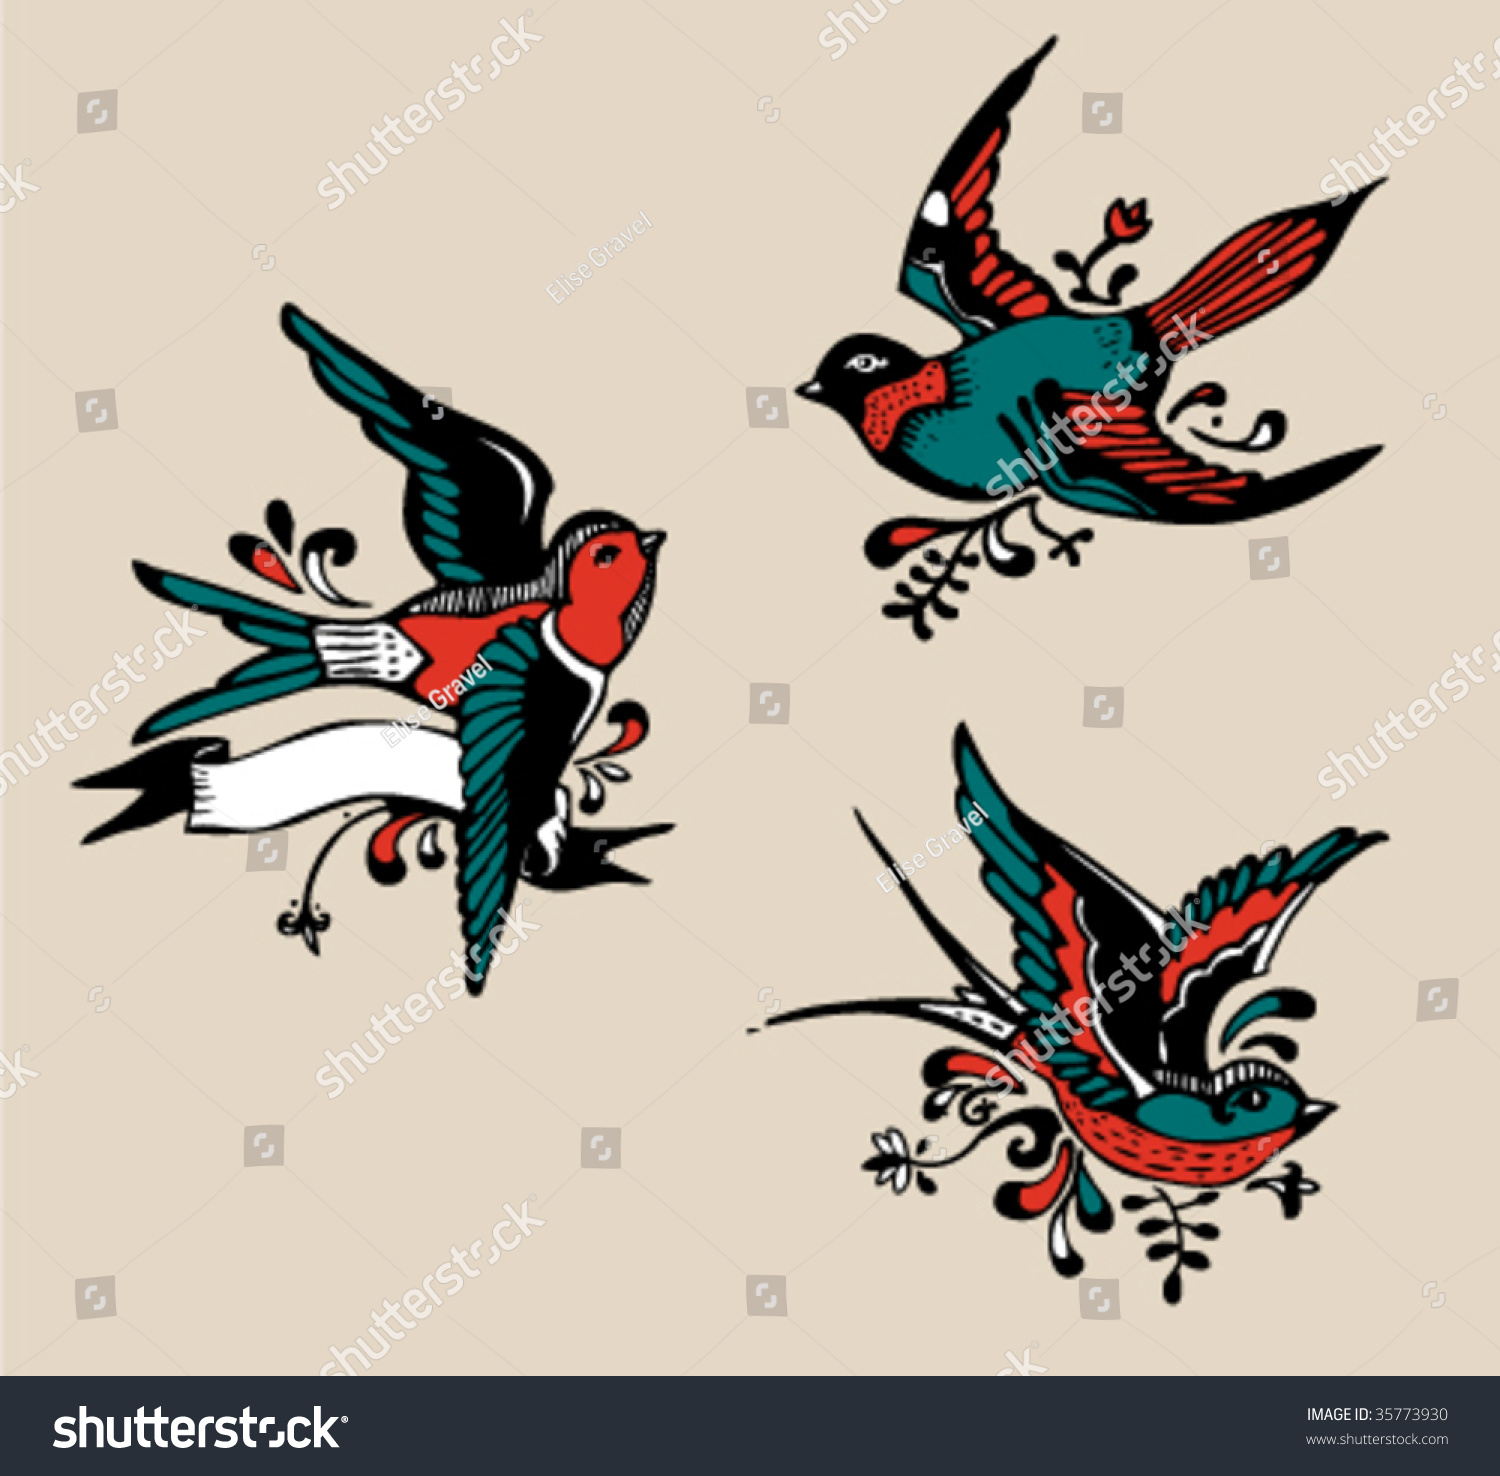 Birds Tattoos Illustrations: Tattoo Stock Vector Illustration 35773930